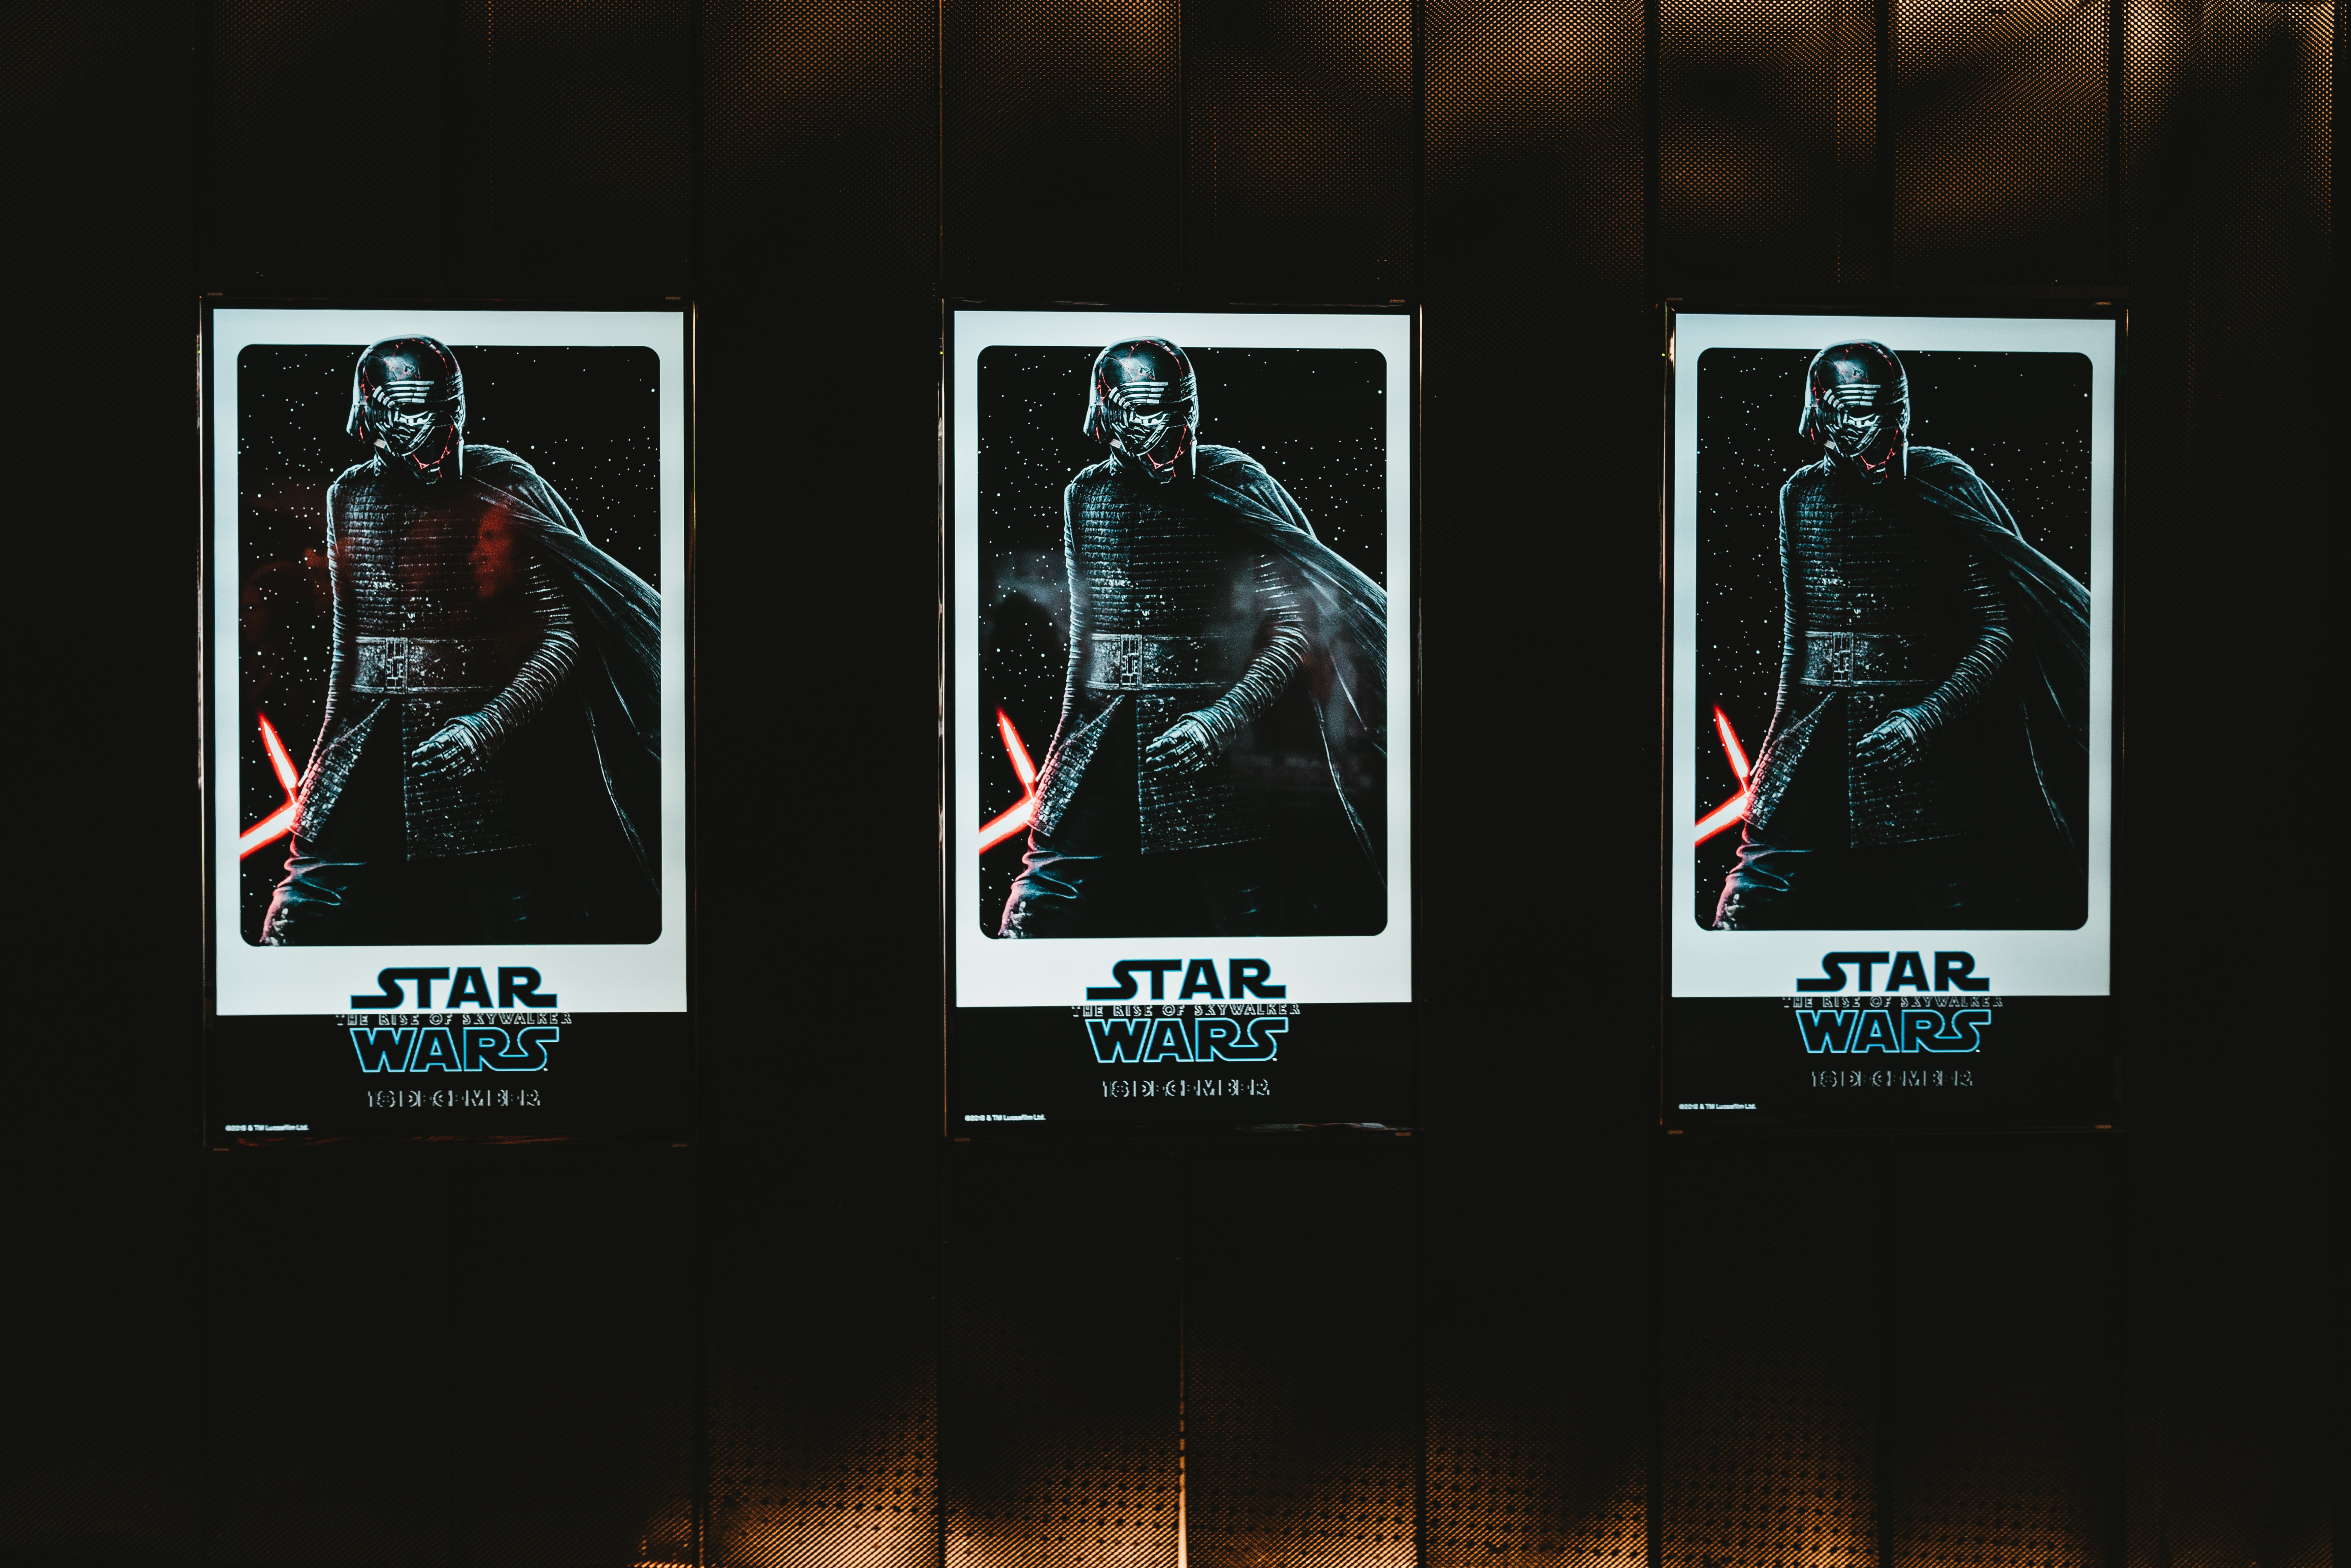 Star Wars Rise Of Skywalker Poster Photo Free Star Wars Image On Unsplash